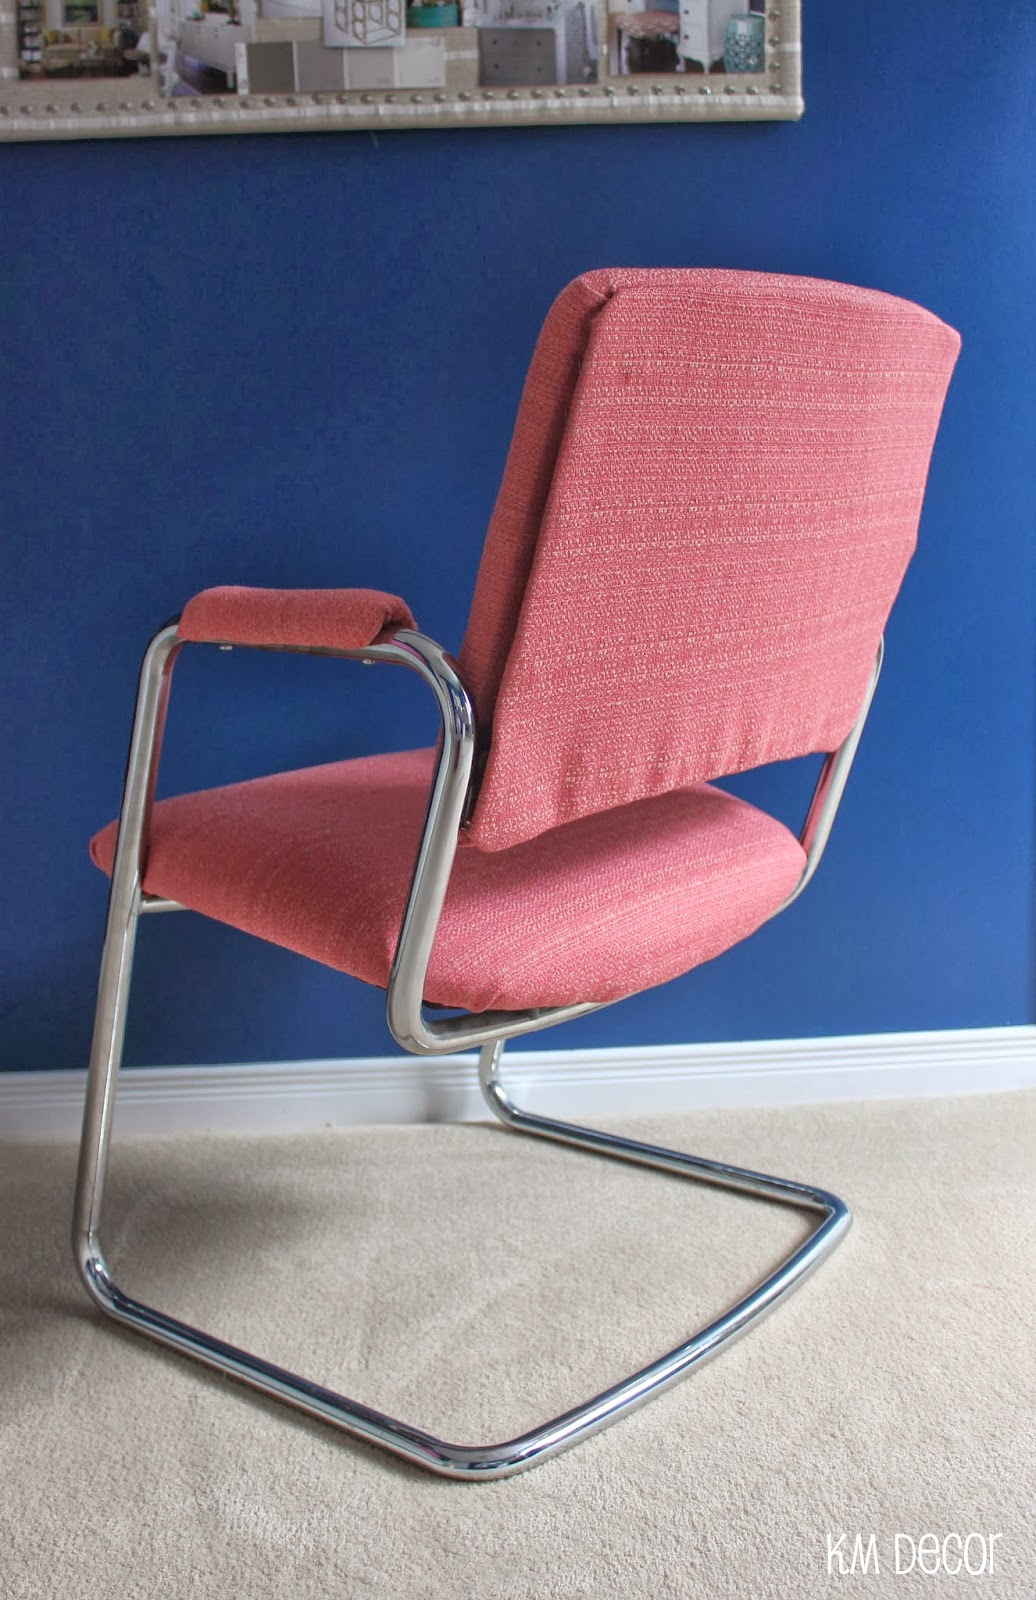 KM Decor: DIY: Office Chair Makeover